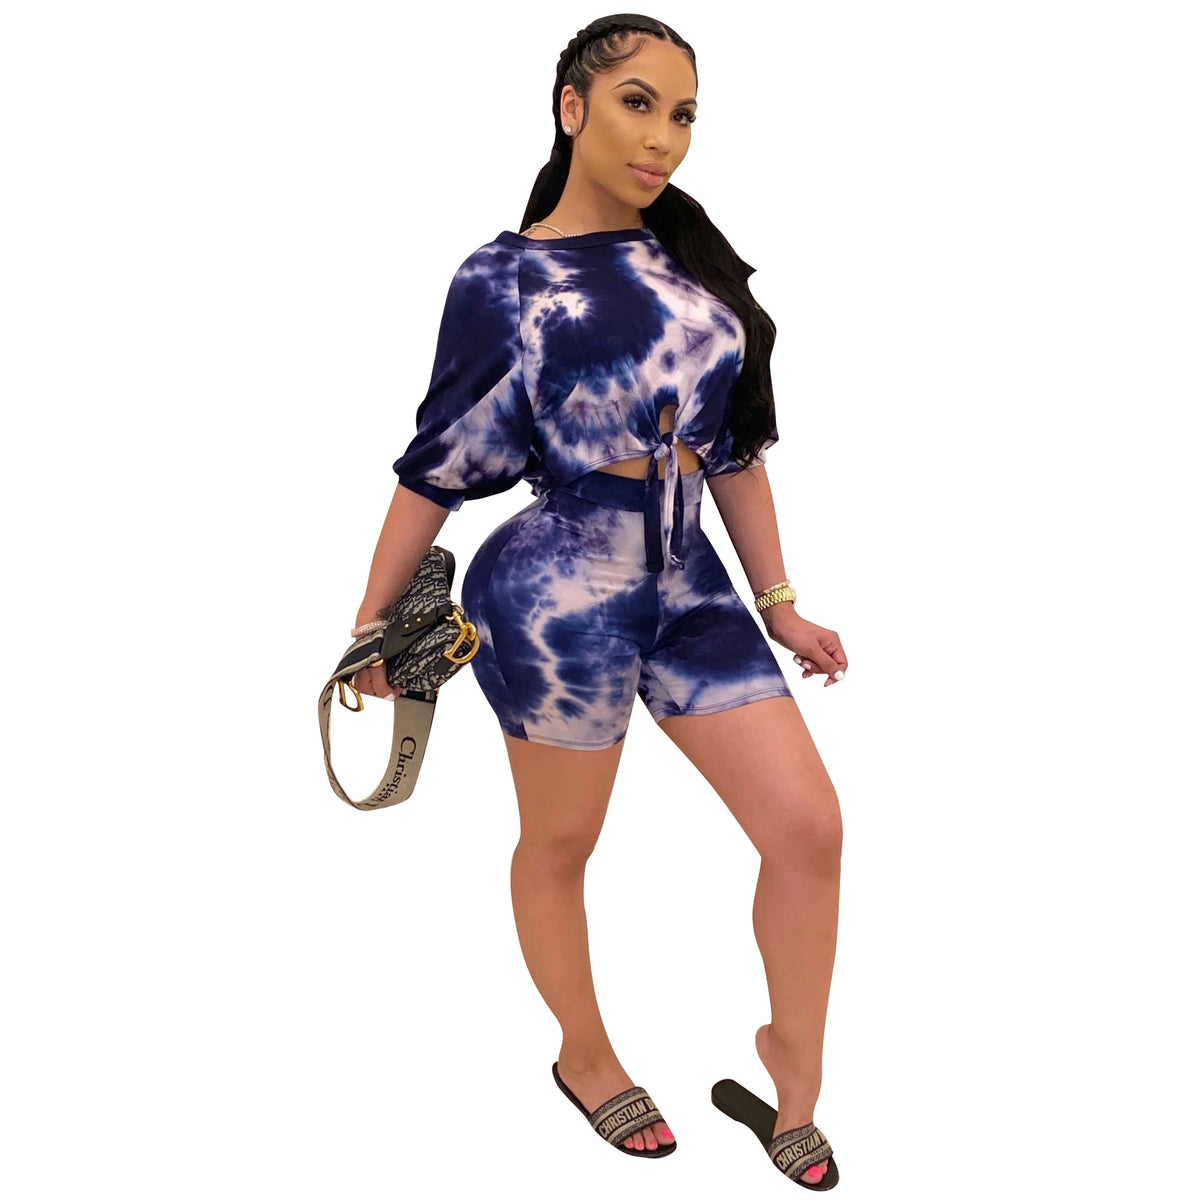 Summer Women Two Pieces Set Tracksuits Half Sleeve O-Neck Tops+Shorts Suits Night Joggers Print Sporty Outfits GL737